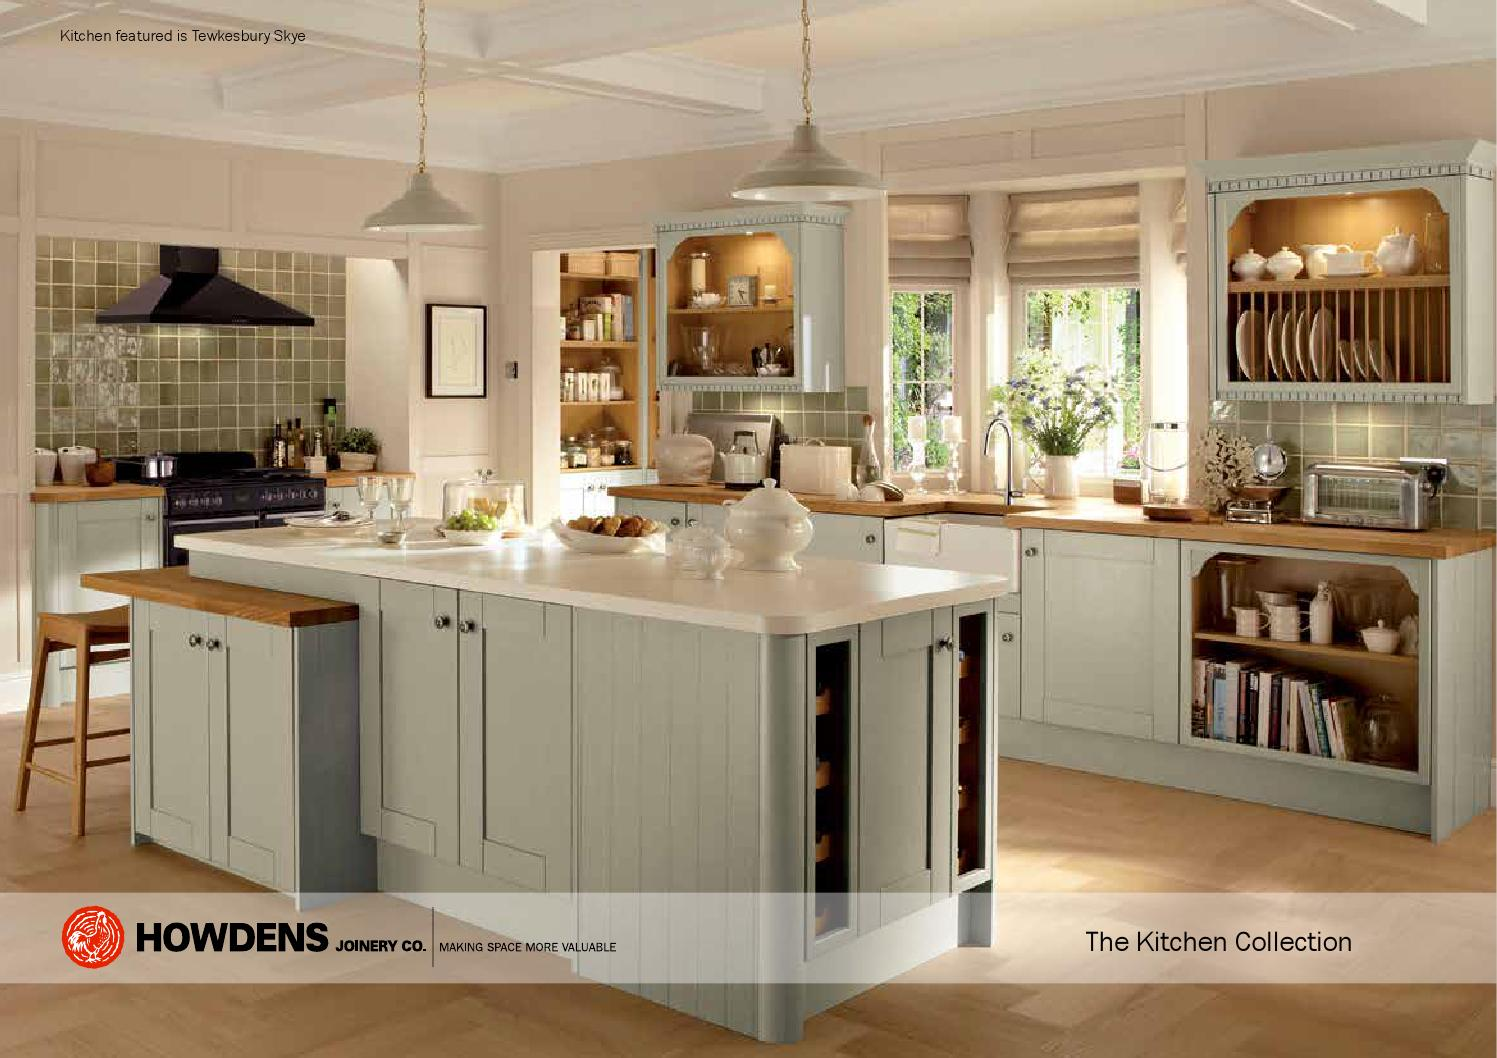 Kitchen Collection Brochure By Jskproperty Issuu: howdens kitchen design reviews